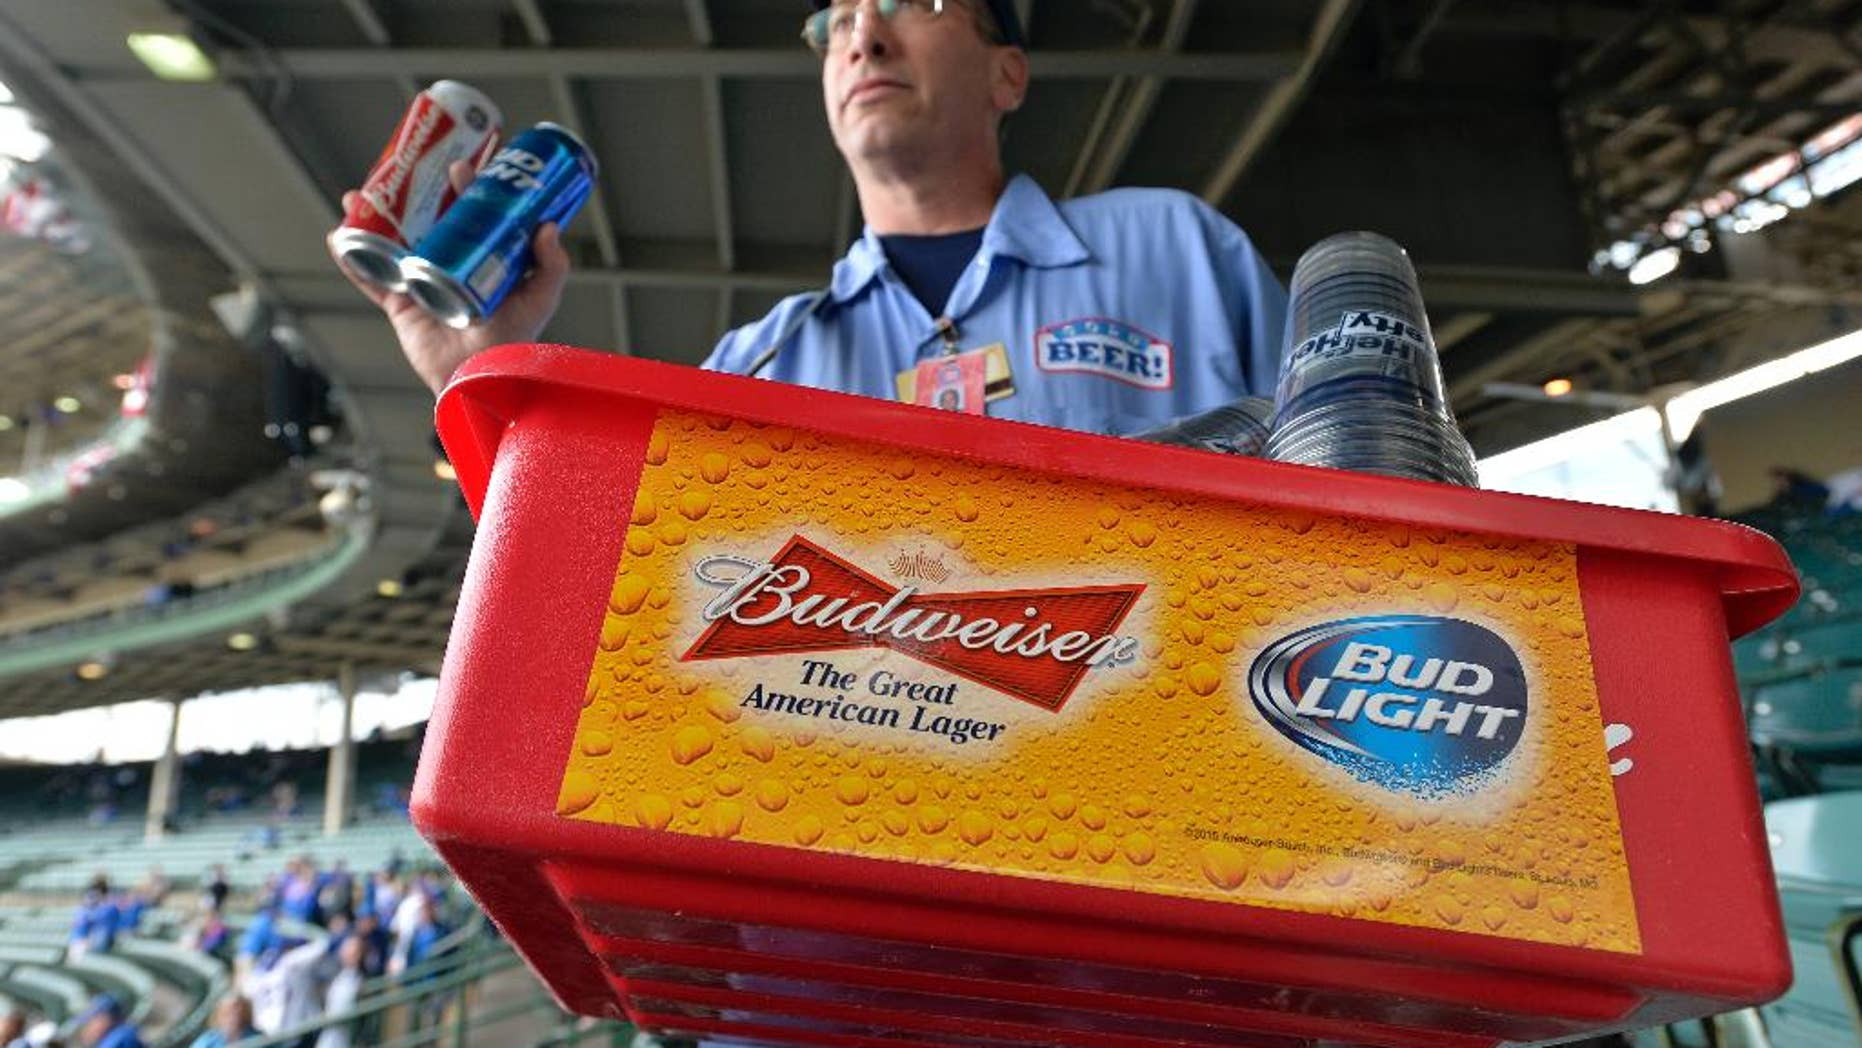 FILE - In this Tuesday, Oct. 13, 2015, file photo, a beer vender holds up Budweiser and Bud Light at Wrigley Field before Game 4 in baseball's National League Division Series between the Chicago Cubs and the St. Louis Cardinals in Chicago. Budweiser's owner Anheuser Busch InBev clinched a preliminary deal earlier this month to take over British beer company SABMiller for around 69 billion pounds ($106 billion). A survey from consulting firm EY on Monday, Oct. 26, 2015, points to more global mega-deals in the year to come. (AP Photo/Paul Beaty, File)